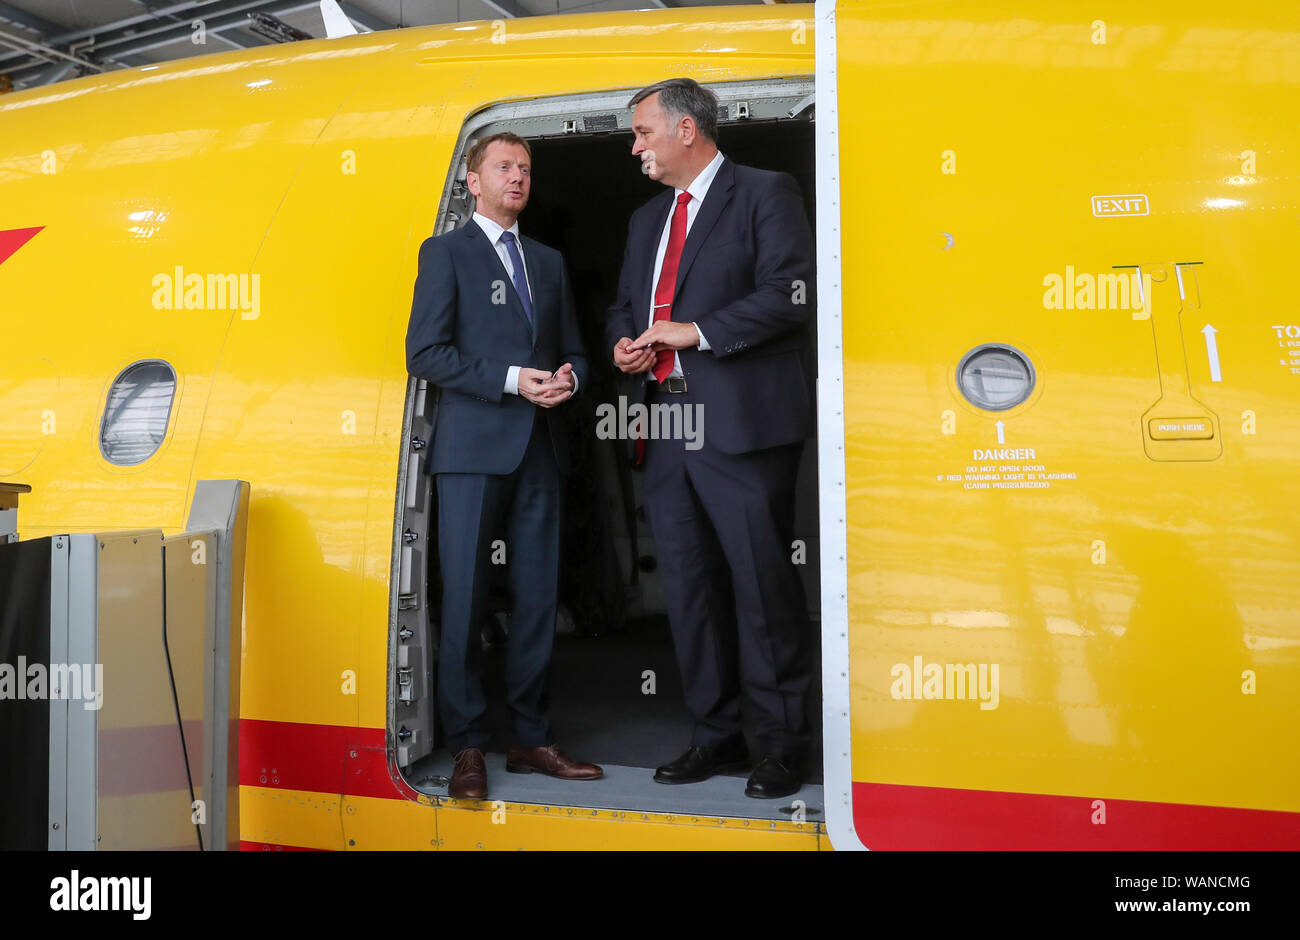 Schkeuditz, Germany. 21st Aug, 2019. Michael Kretschmer (CDU, l), Prime Minister of Saxony, stands next to Markus Otto, Managing Director of DHL Leipzig, on the sidelines of the National Aviation Conference in the door of a cargo aircraft at Leipzig-Halle Airport. Credit: Jan Woitas/dpa-Zentralbild/dpa/Alamy Live News Stock Photo